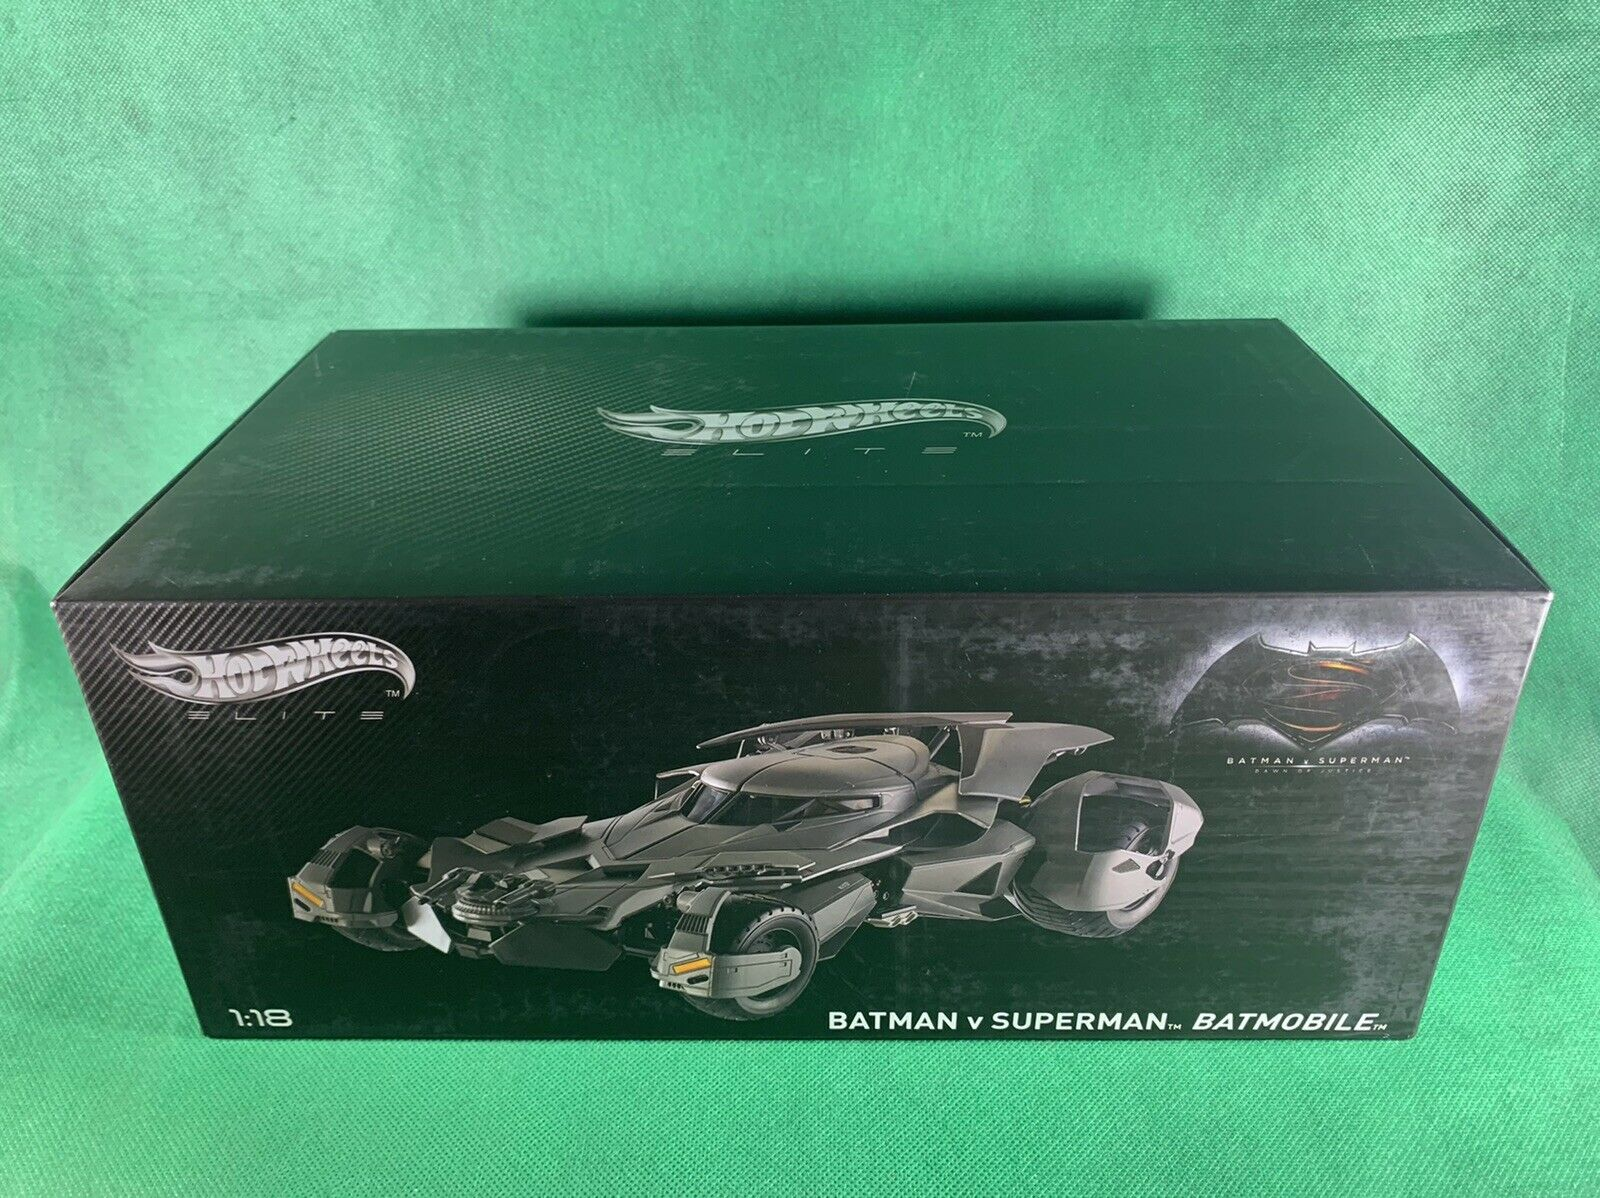 HOT WHEELS 1:18 ELITE BATMAN VS. SUPERMAN DAWN OF JUSTICE BATMOBILE DIE-CAST NEW